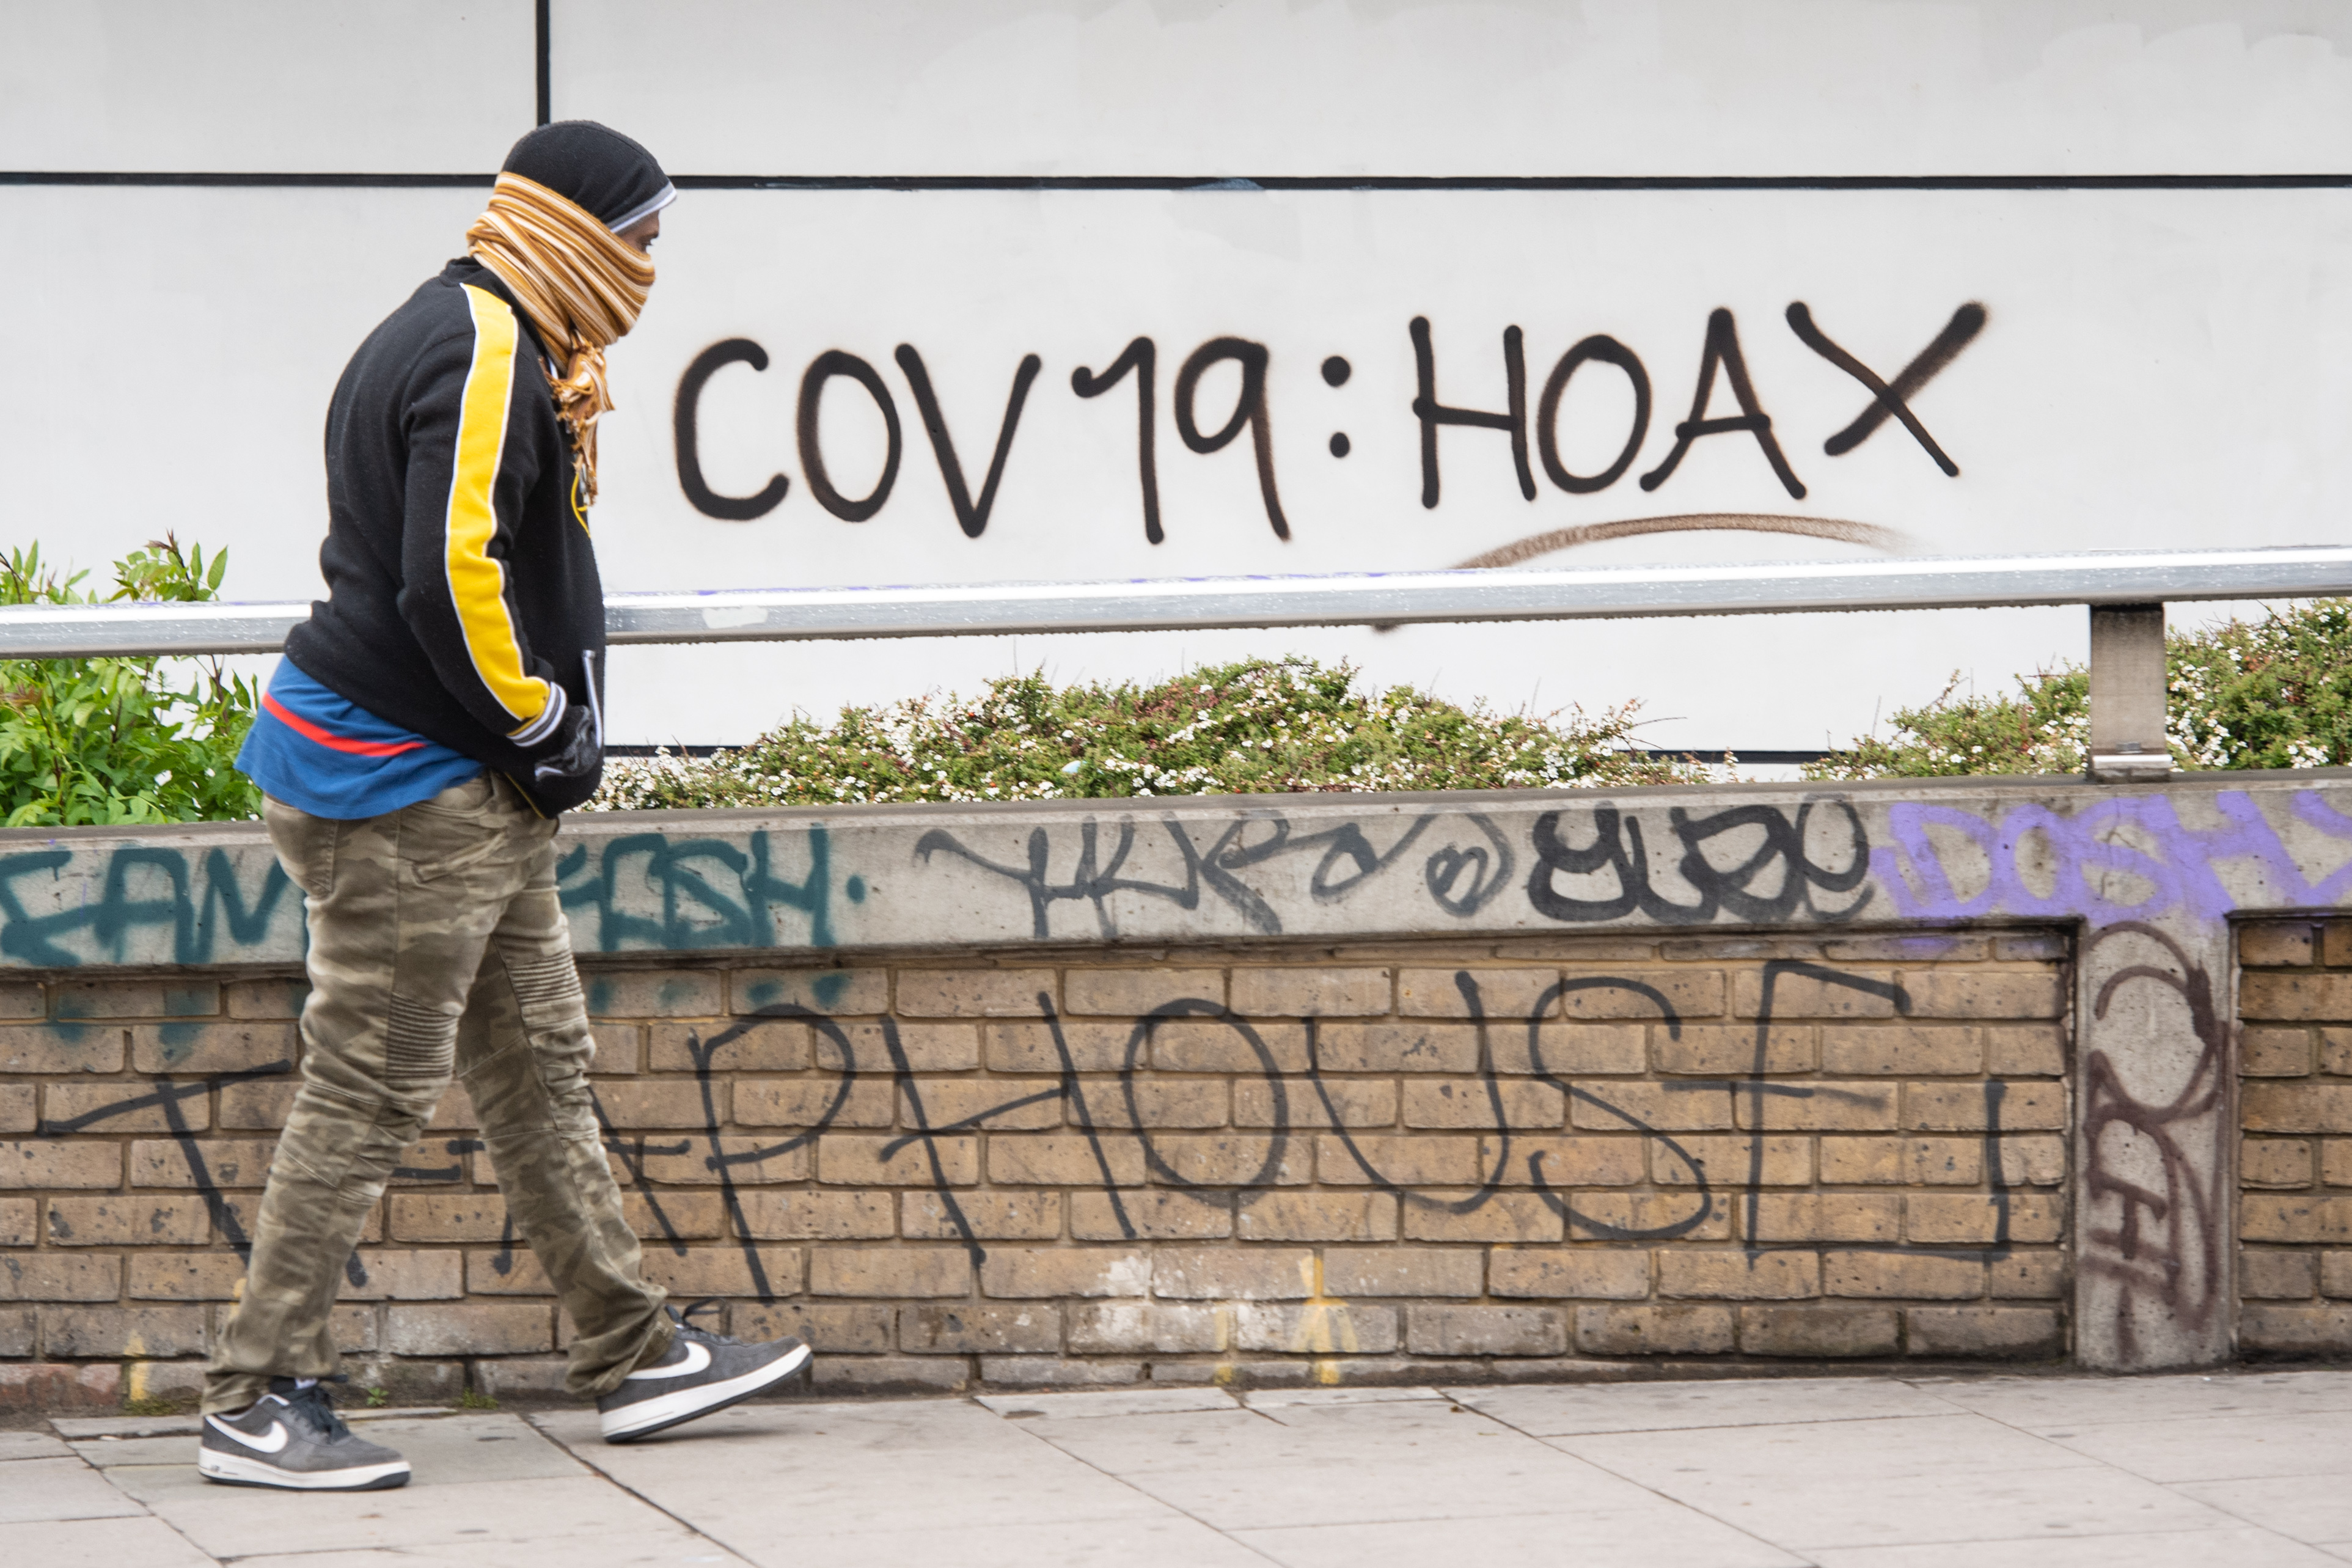 A man passes graffiti reading 'cov 19: hoax', in south London, as the UK continues in lockdown to help curb the spread of coronavirus.